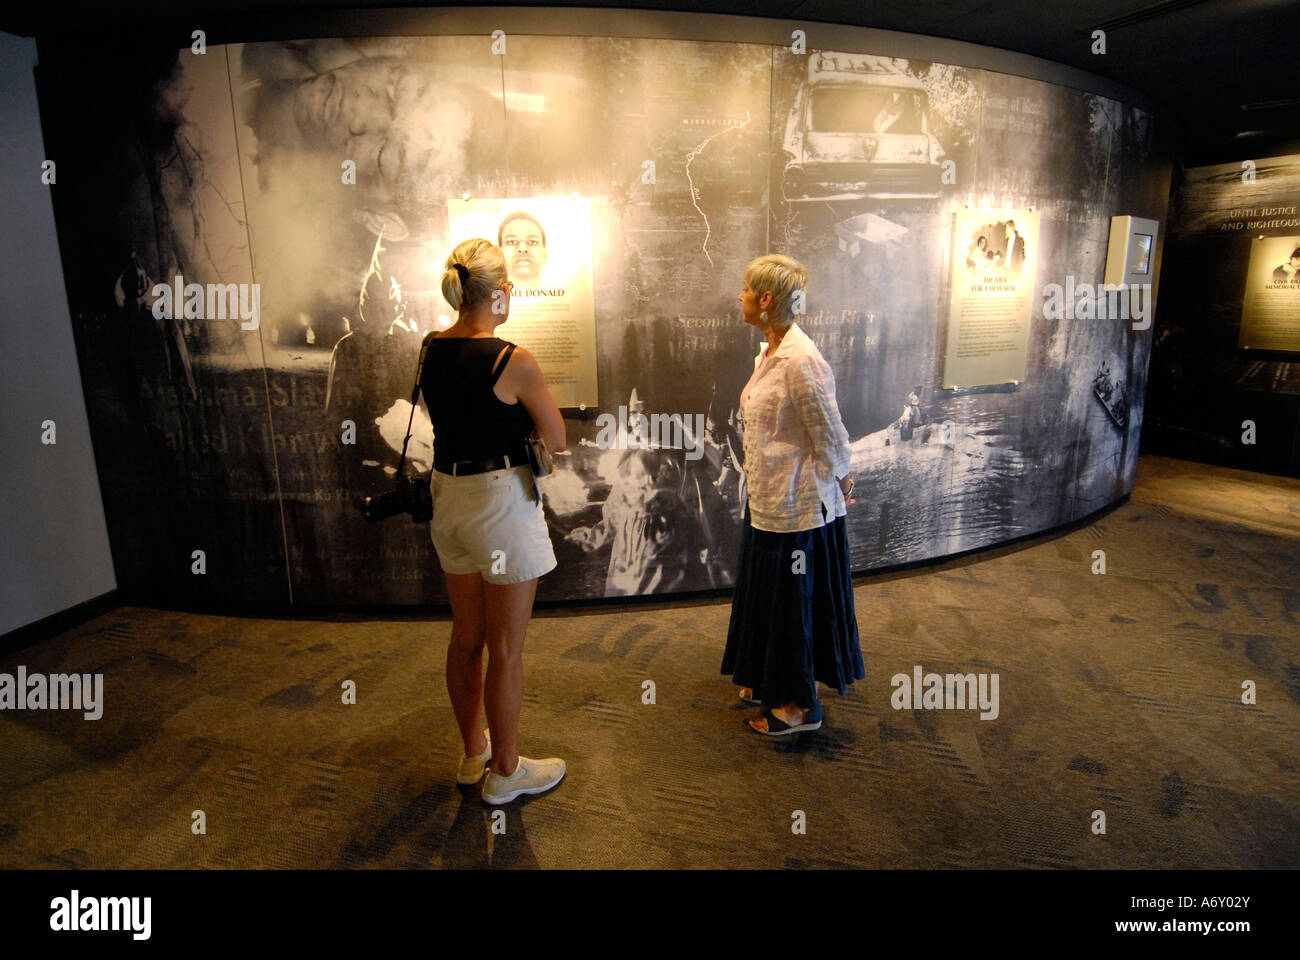 Interior of the Civil Rights Memorial Center located in the historic city of Montgomery Alabama AL - Stock Image